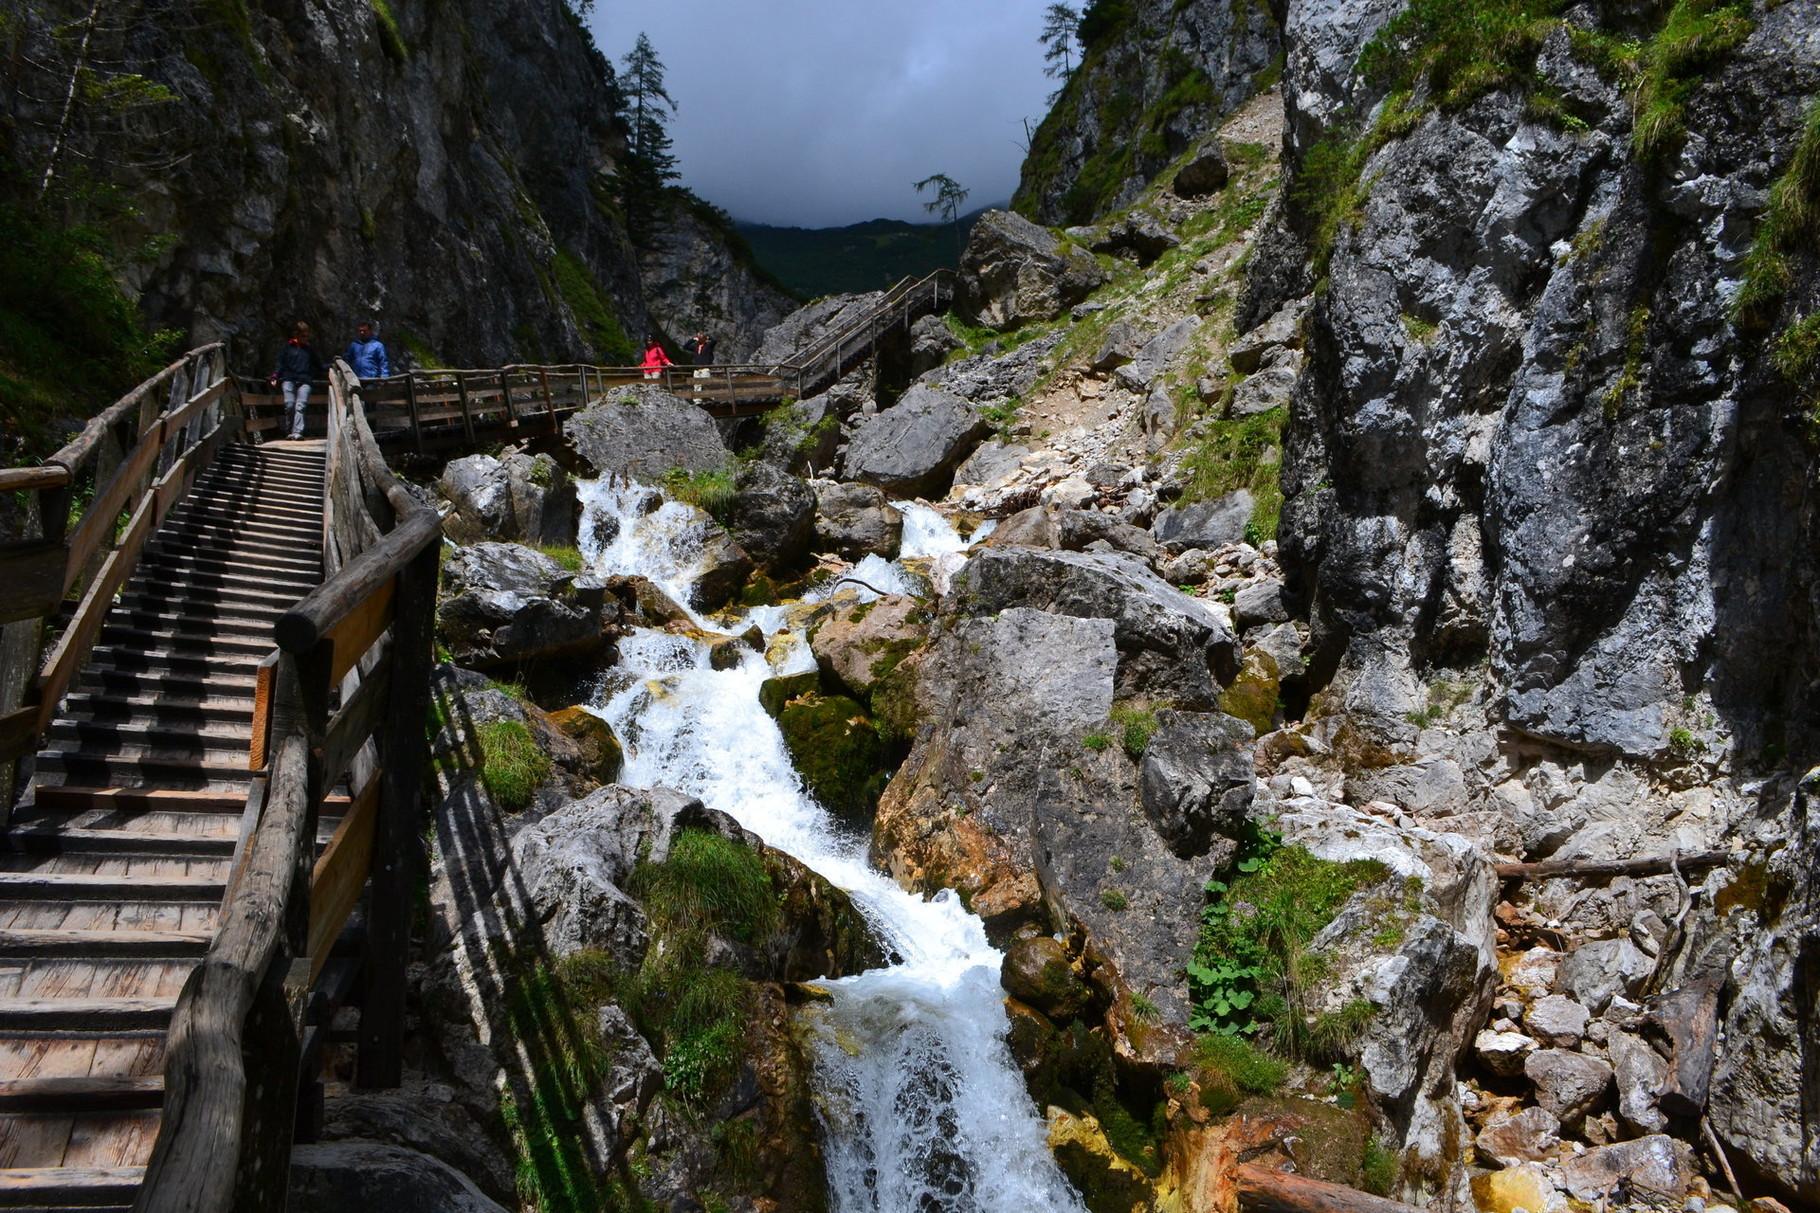 The Silberkarklamm